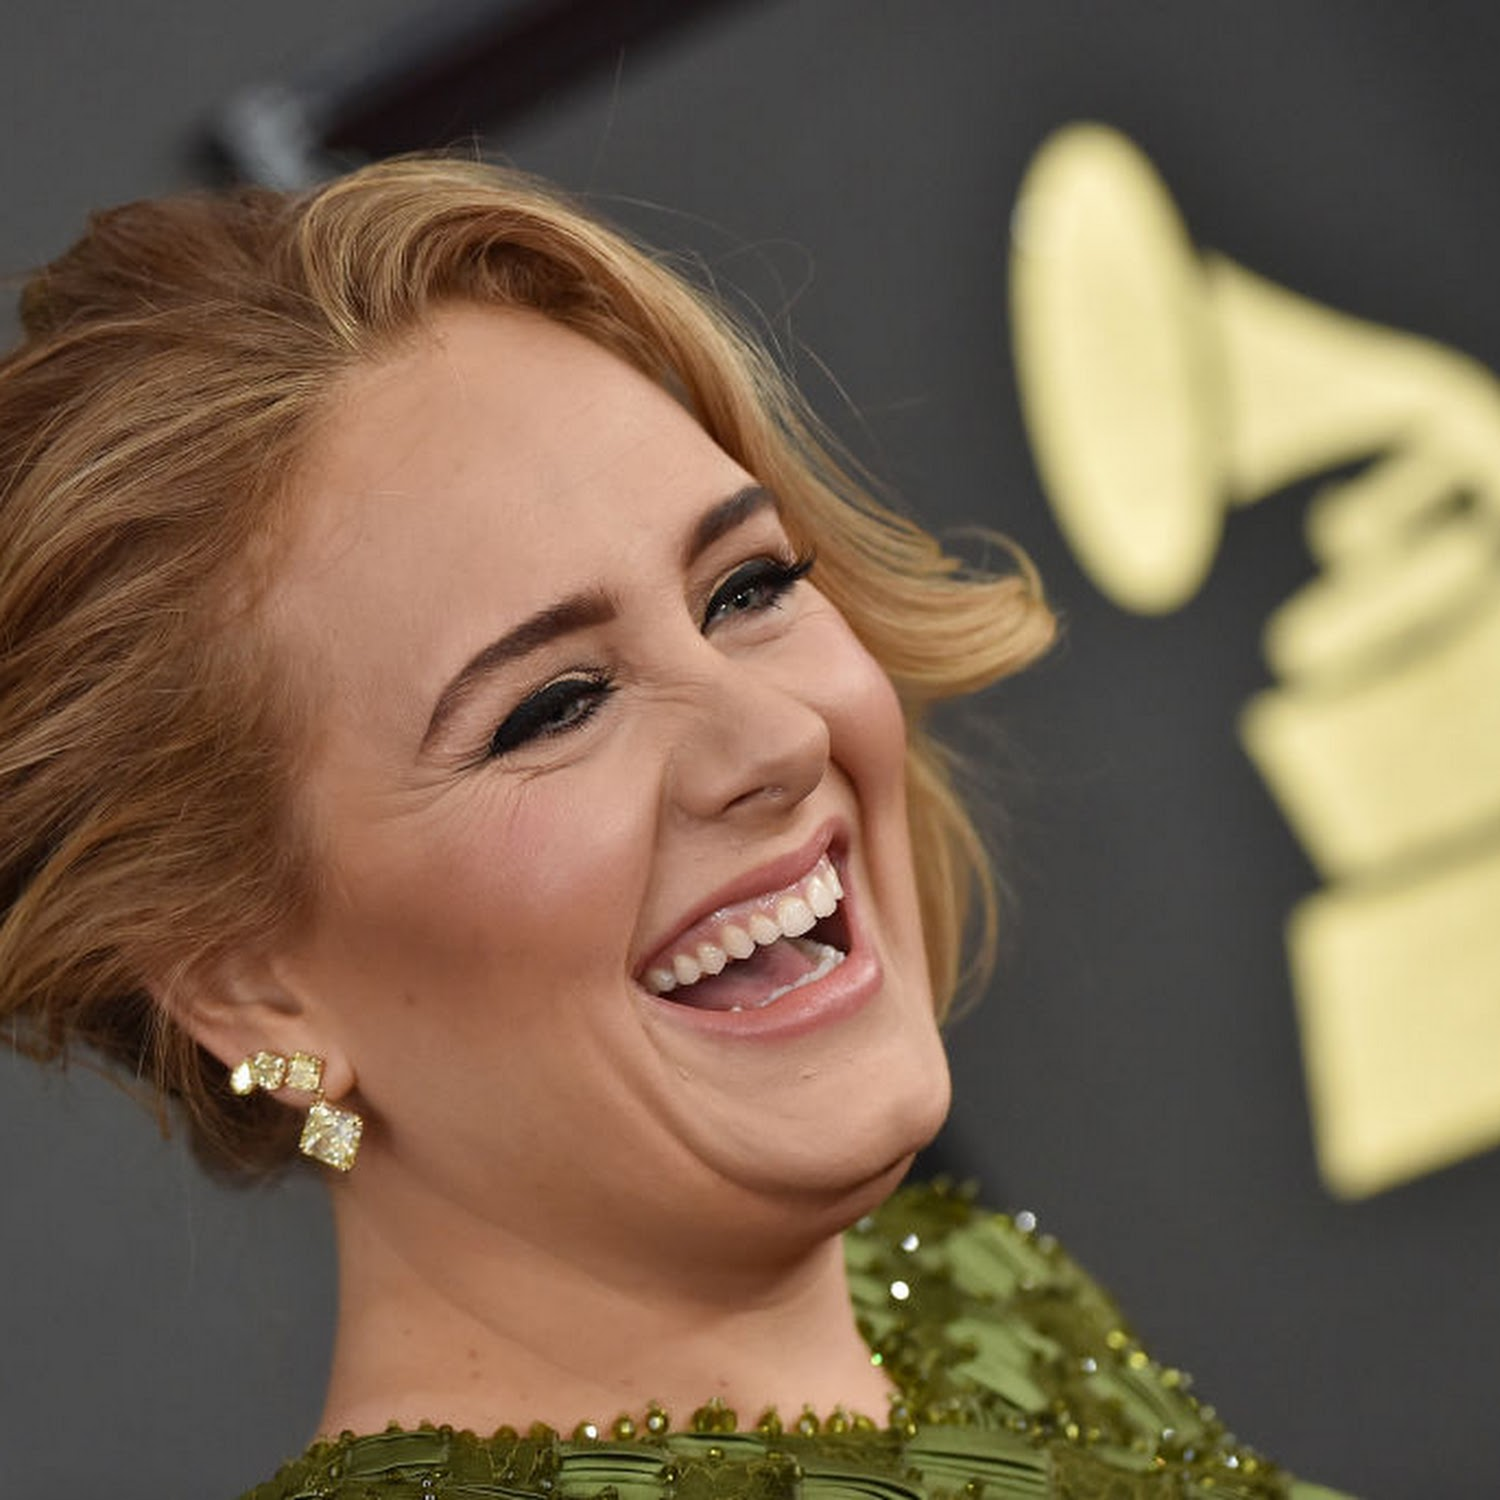 Adele Accused Of Cultural Appropriation For Her Bantu Knots Hairstyle Jamaican Flag Bikini